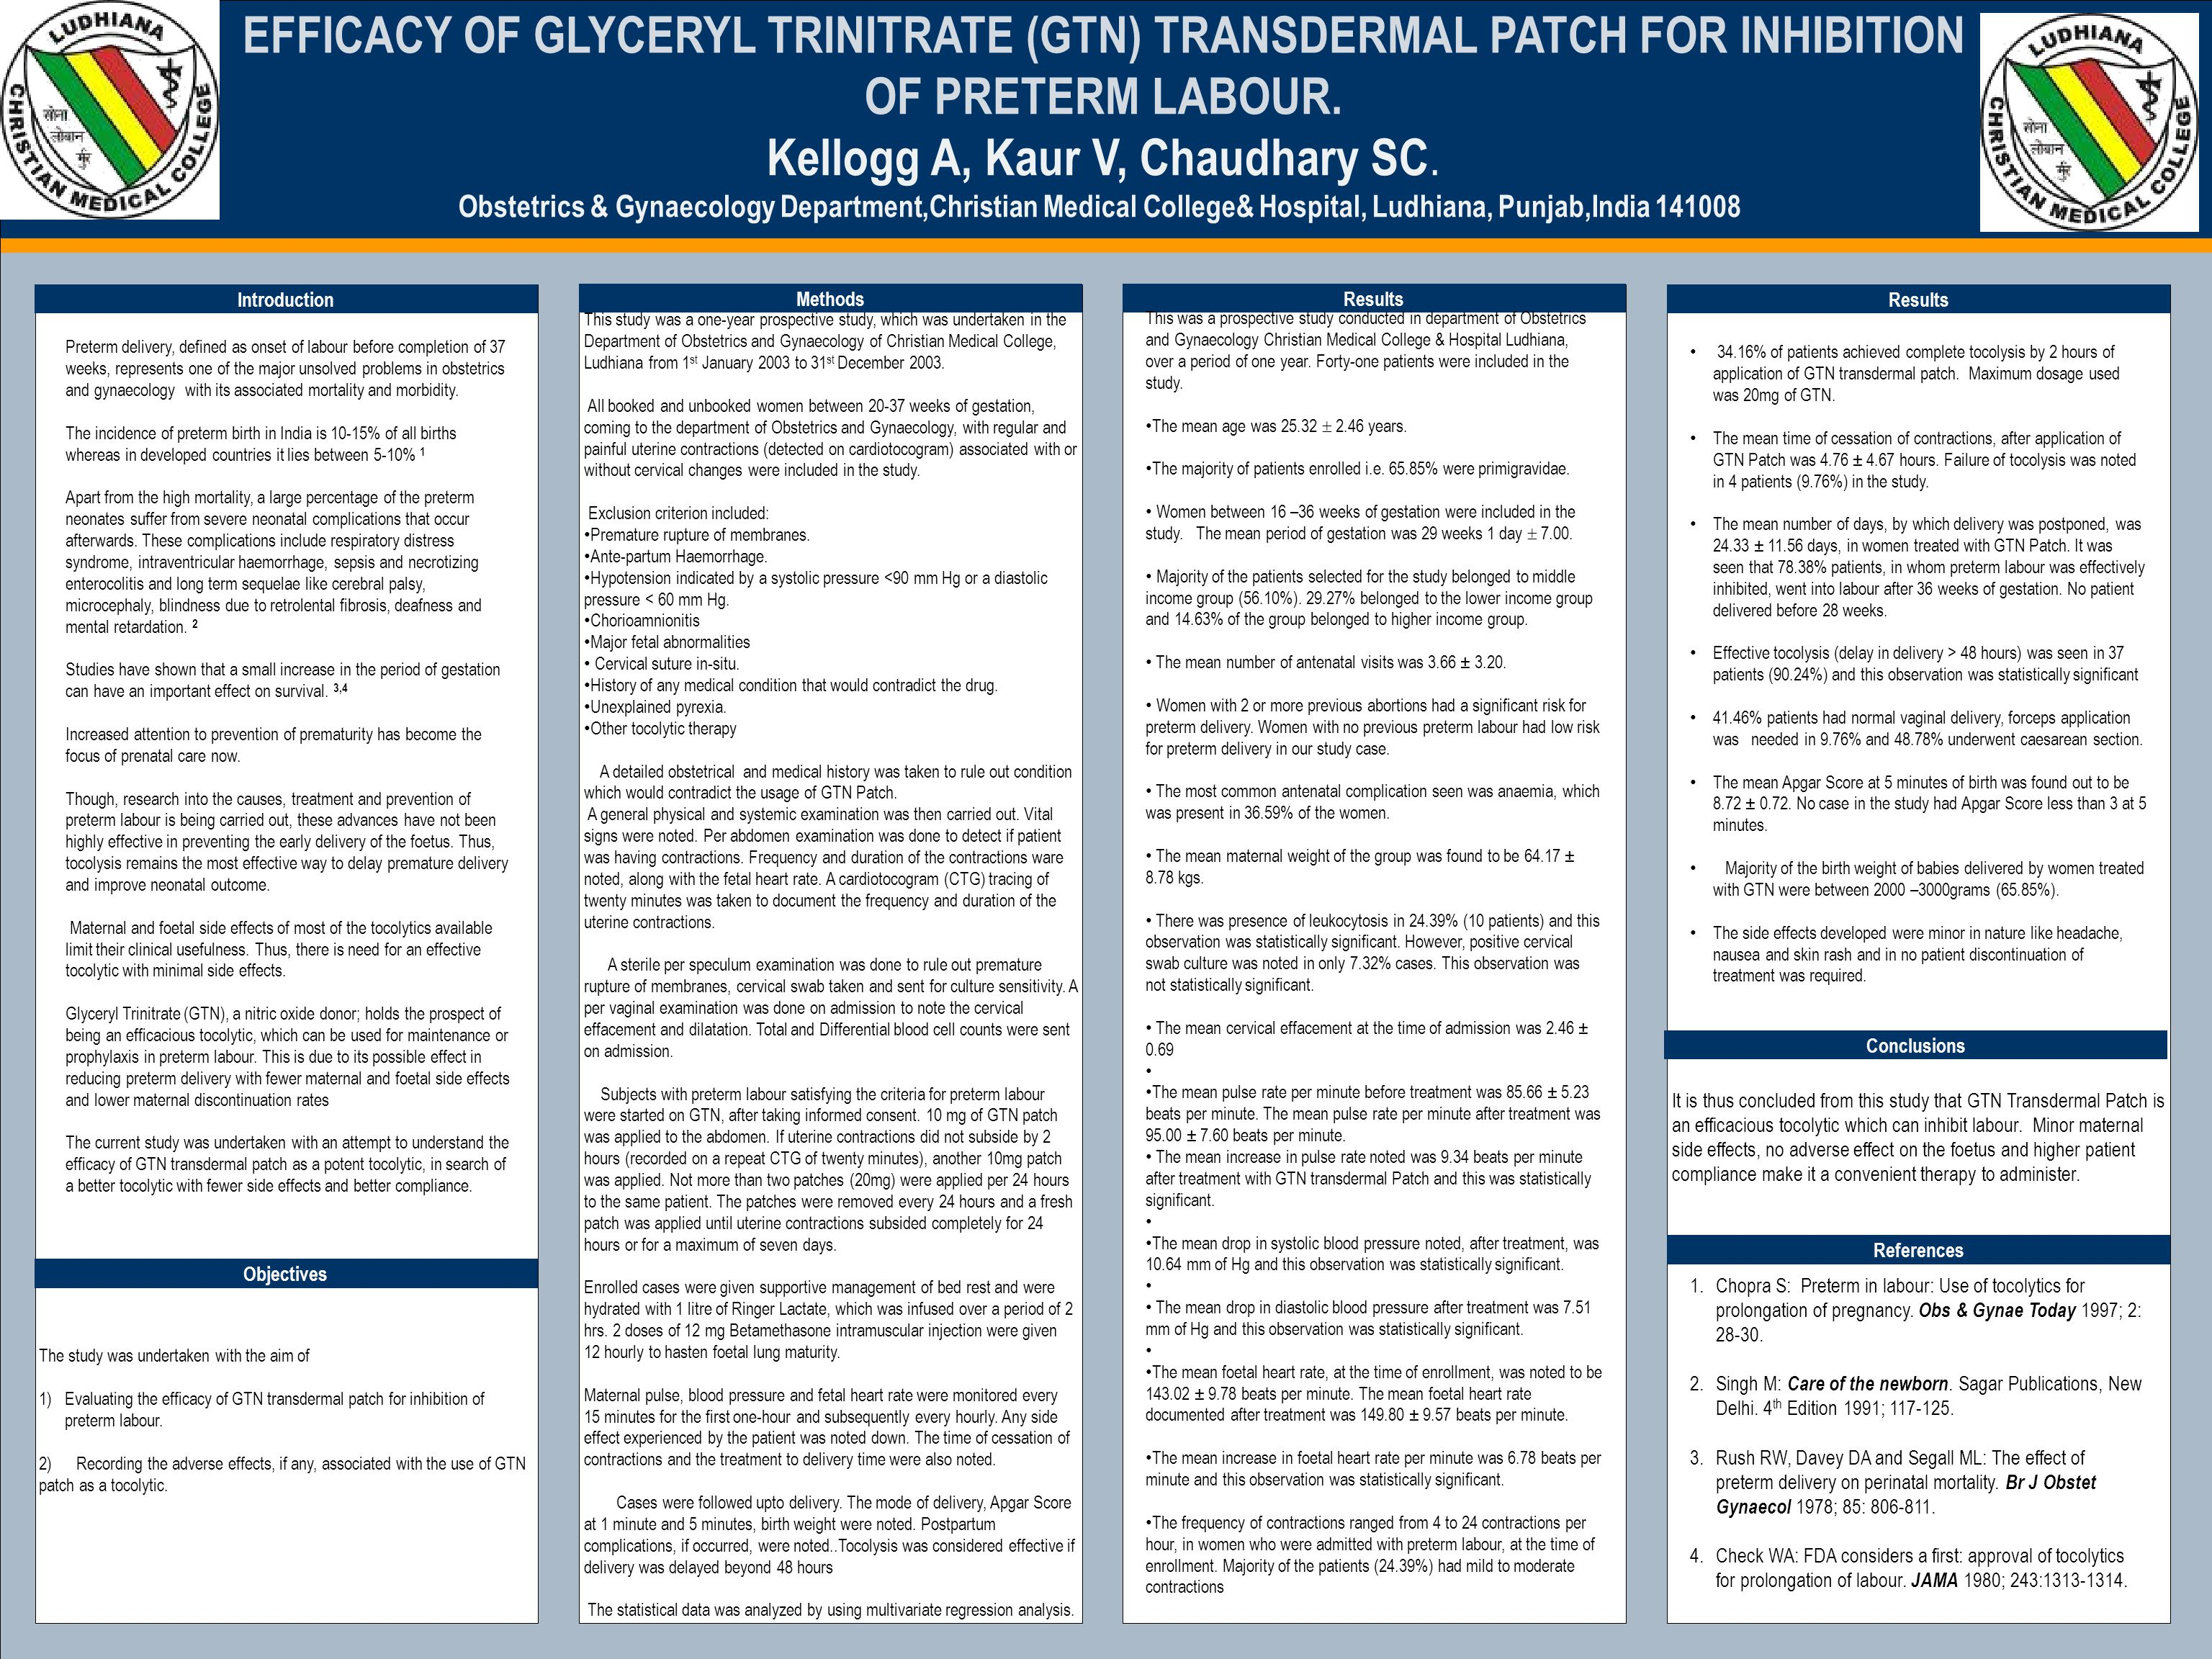 TEMPLATE DESIGN © 2008 www.PosterPresentations.com EFFICACY OF GLYCERYL TRINITRATE (GTN) TRANSDERMAL PATCH FOR INHIBITION OF PRETERM LABOUR.